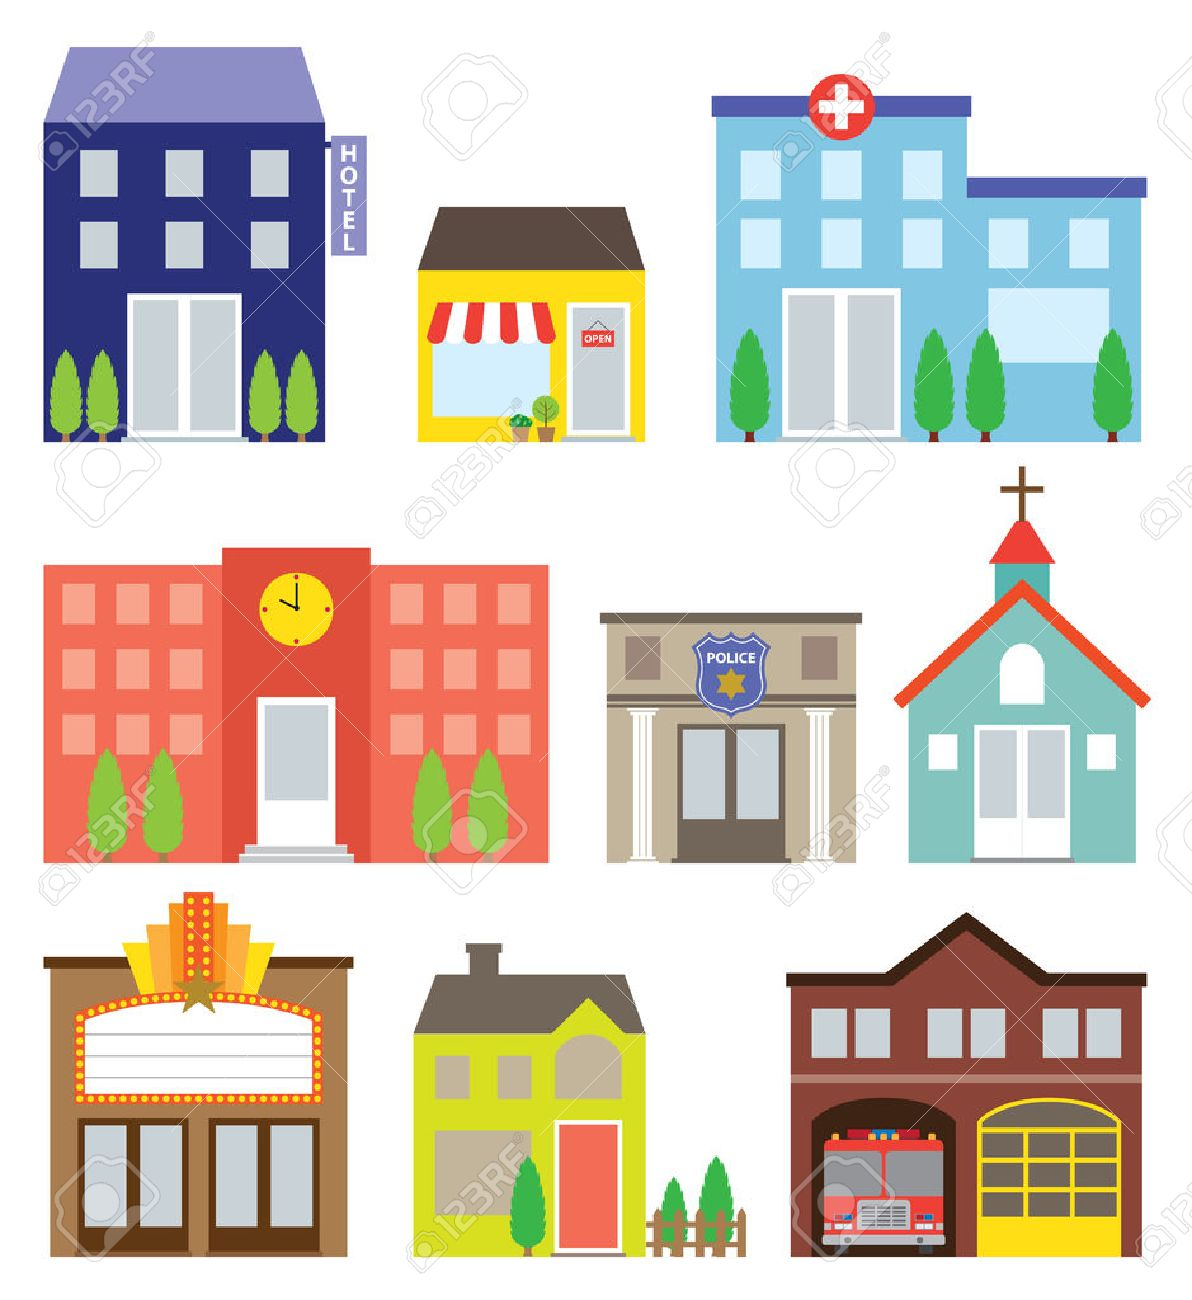 illustration of buildings including store, hotel, hospital, school, police station, church, movie theater, house and fire station - 27507087